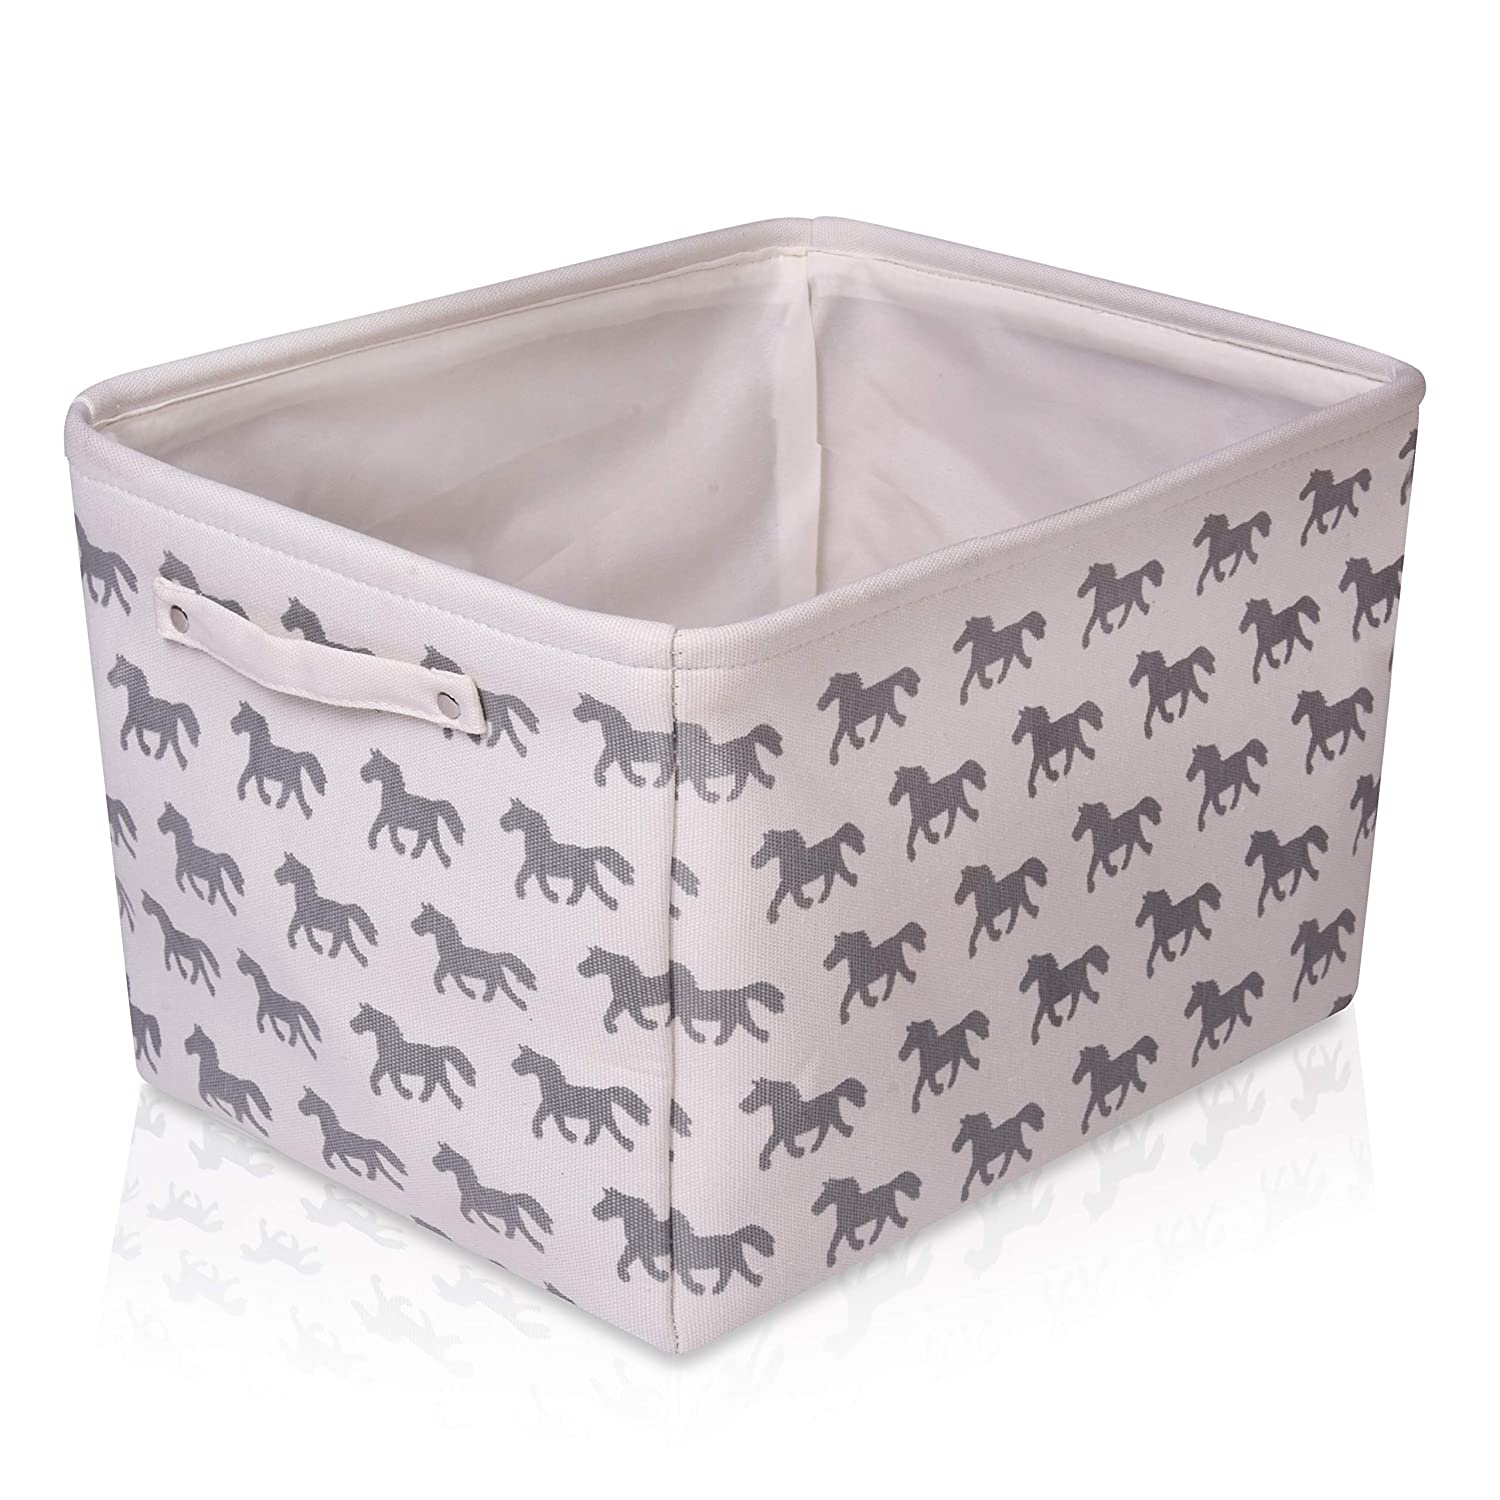 White Horse Canvas Storage Basket Rectangle Fabric Basket with Grey Horse Pattern - Perfect for Household Storage, Fabrics or Toys. Size: 40cms x 30cms x 25cms For the Love of Leisure